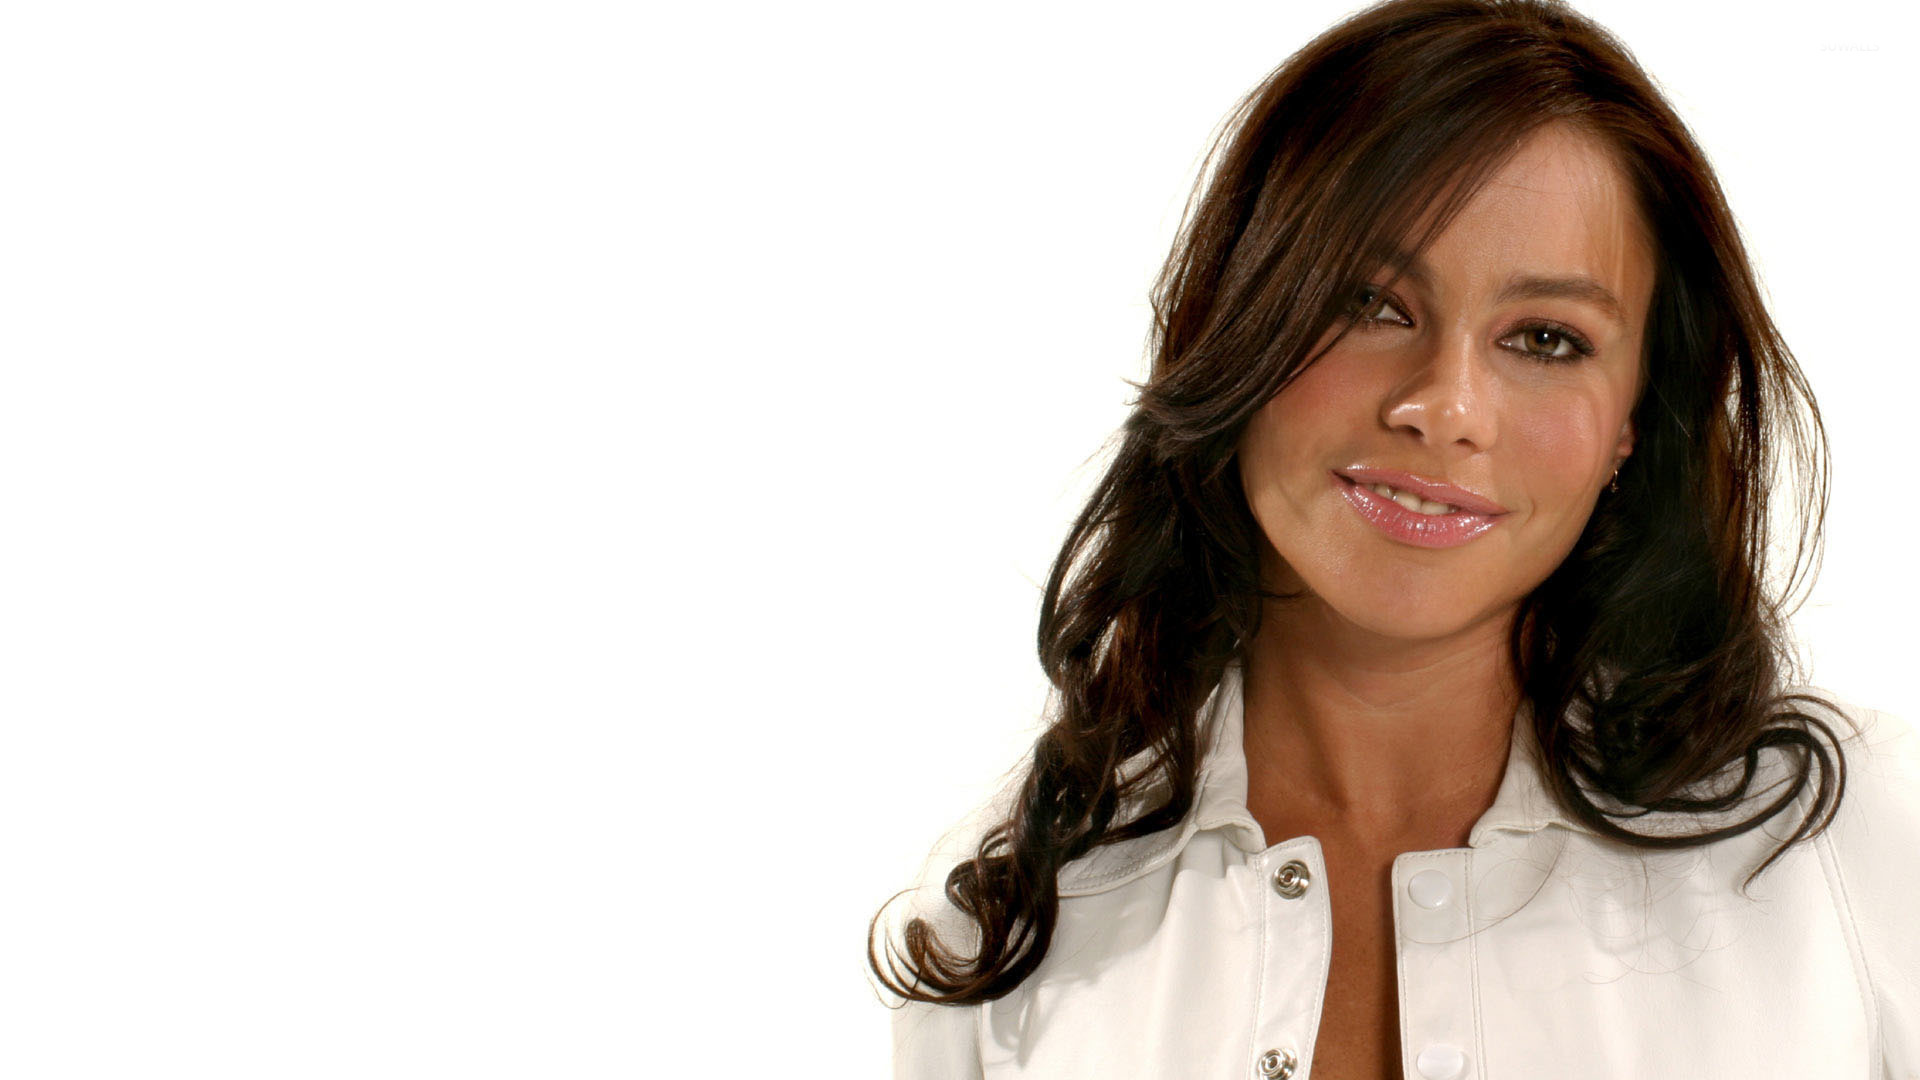 Sofia Vergara smiling in a white top wallpaper   Celebrity wallpapers 1920x1080